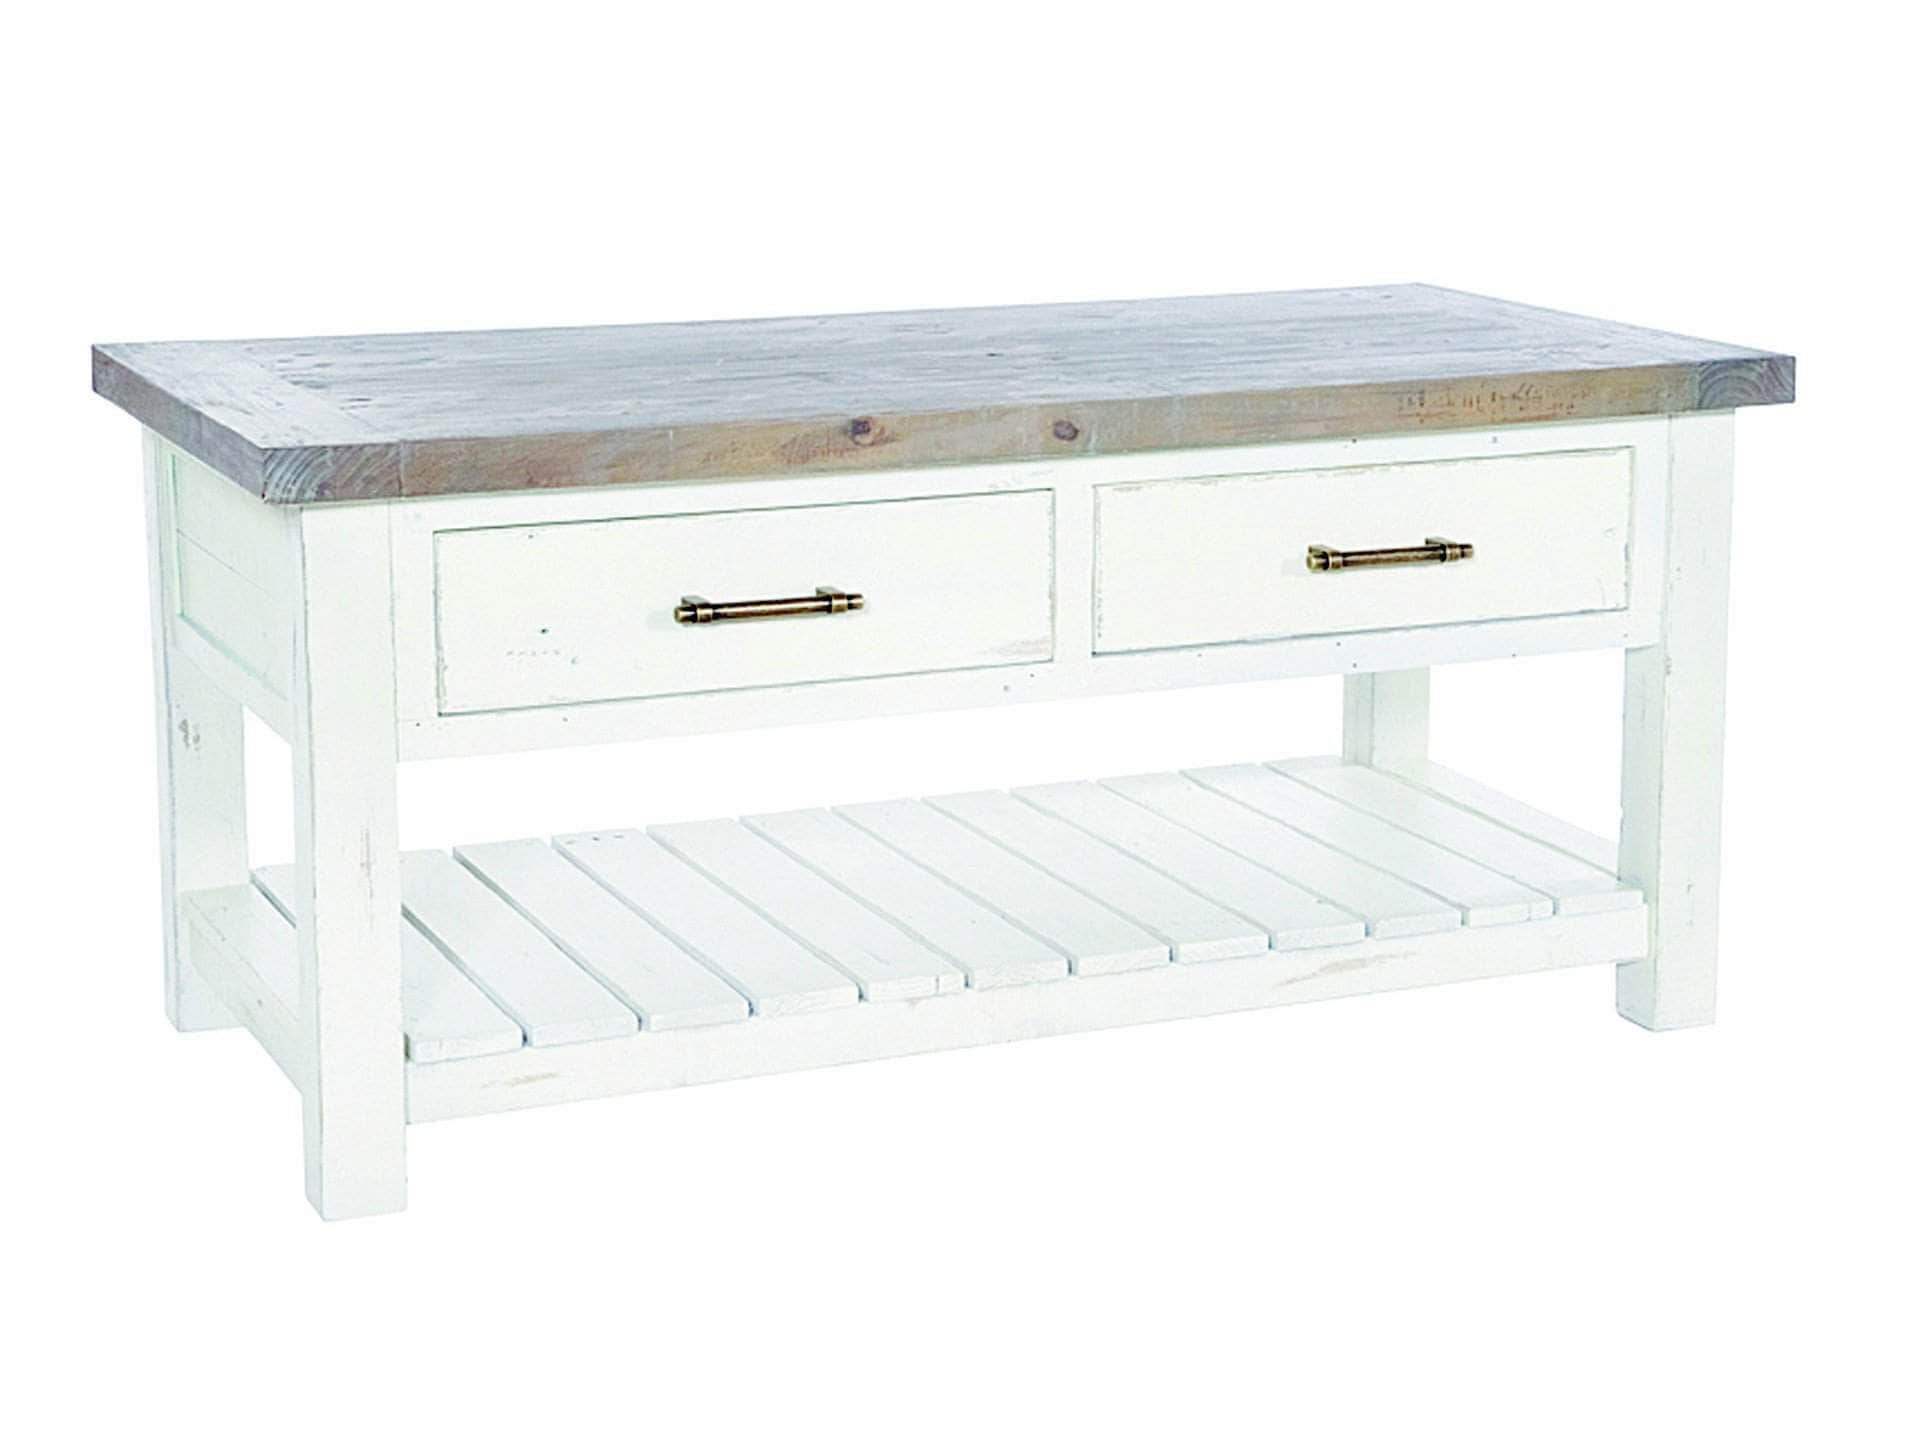 Paxford ivory white coffee table with two drawers and slatted under shelf